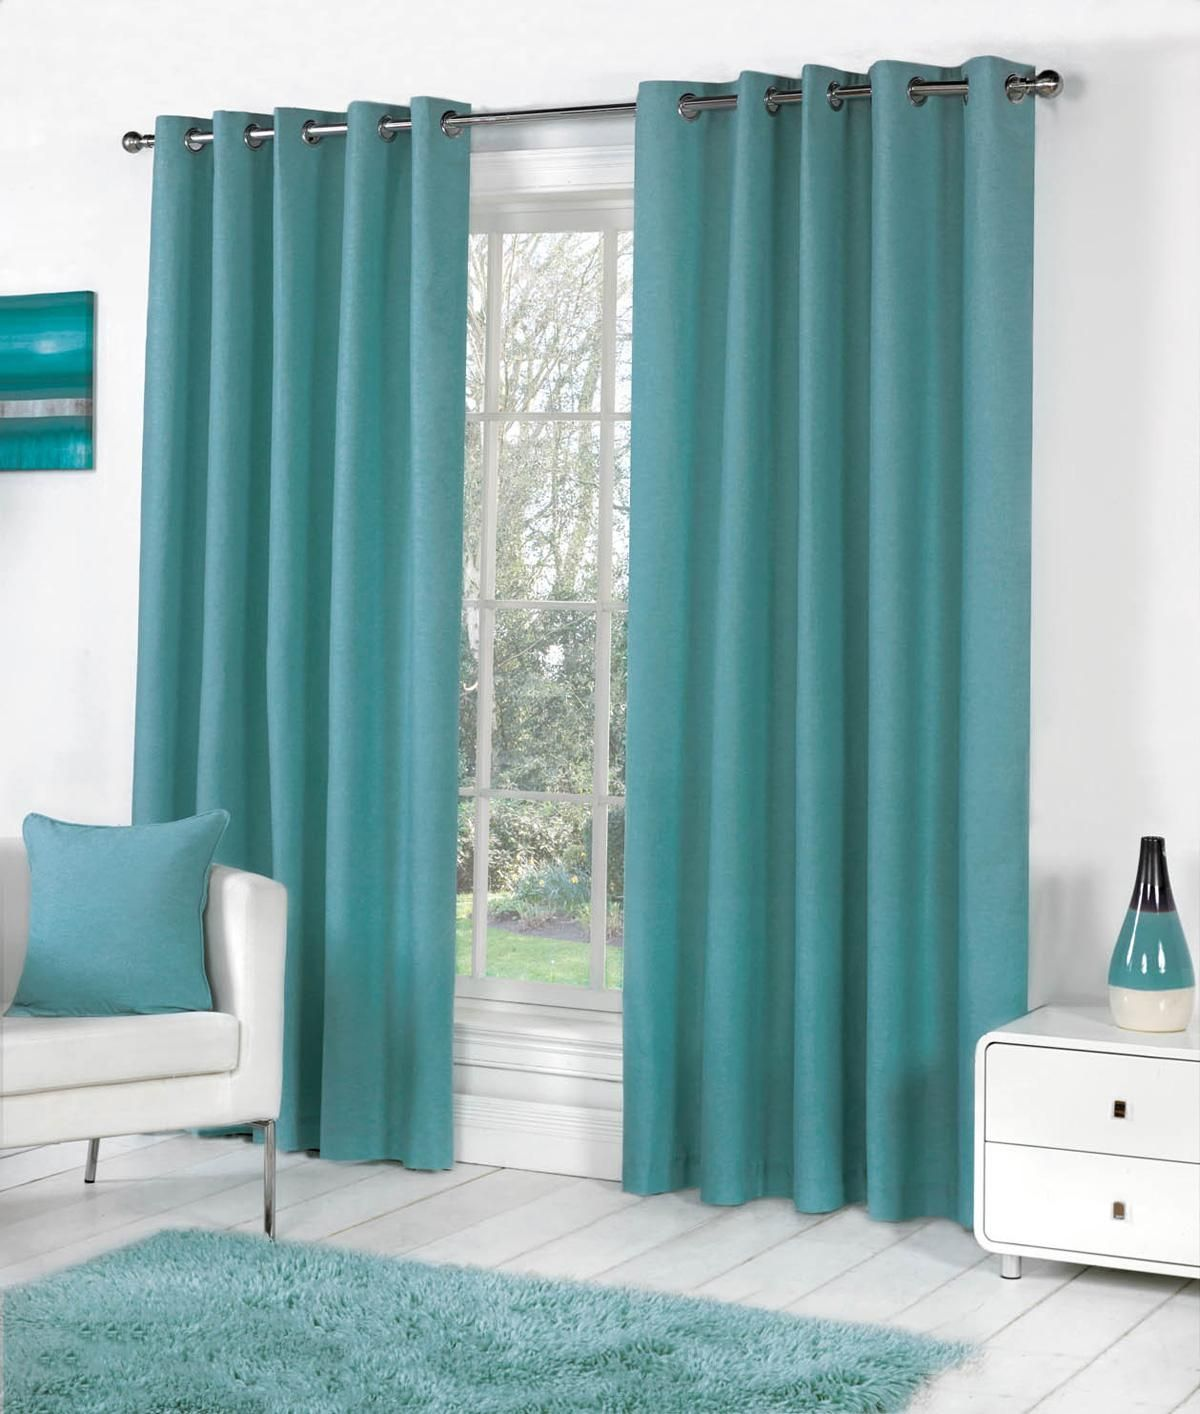 Images Of Full Length Teal Coloured Designer Curtains